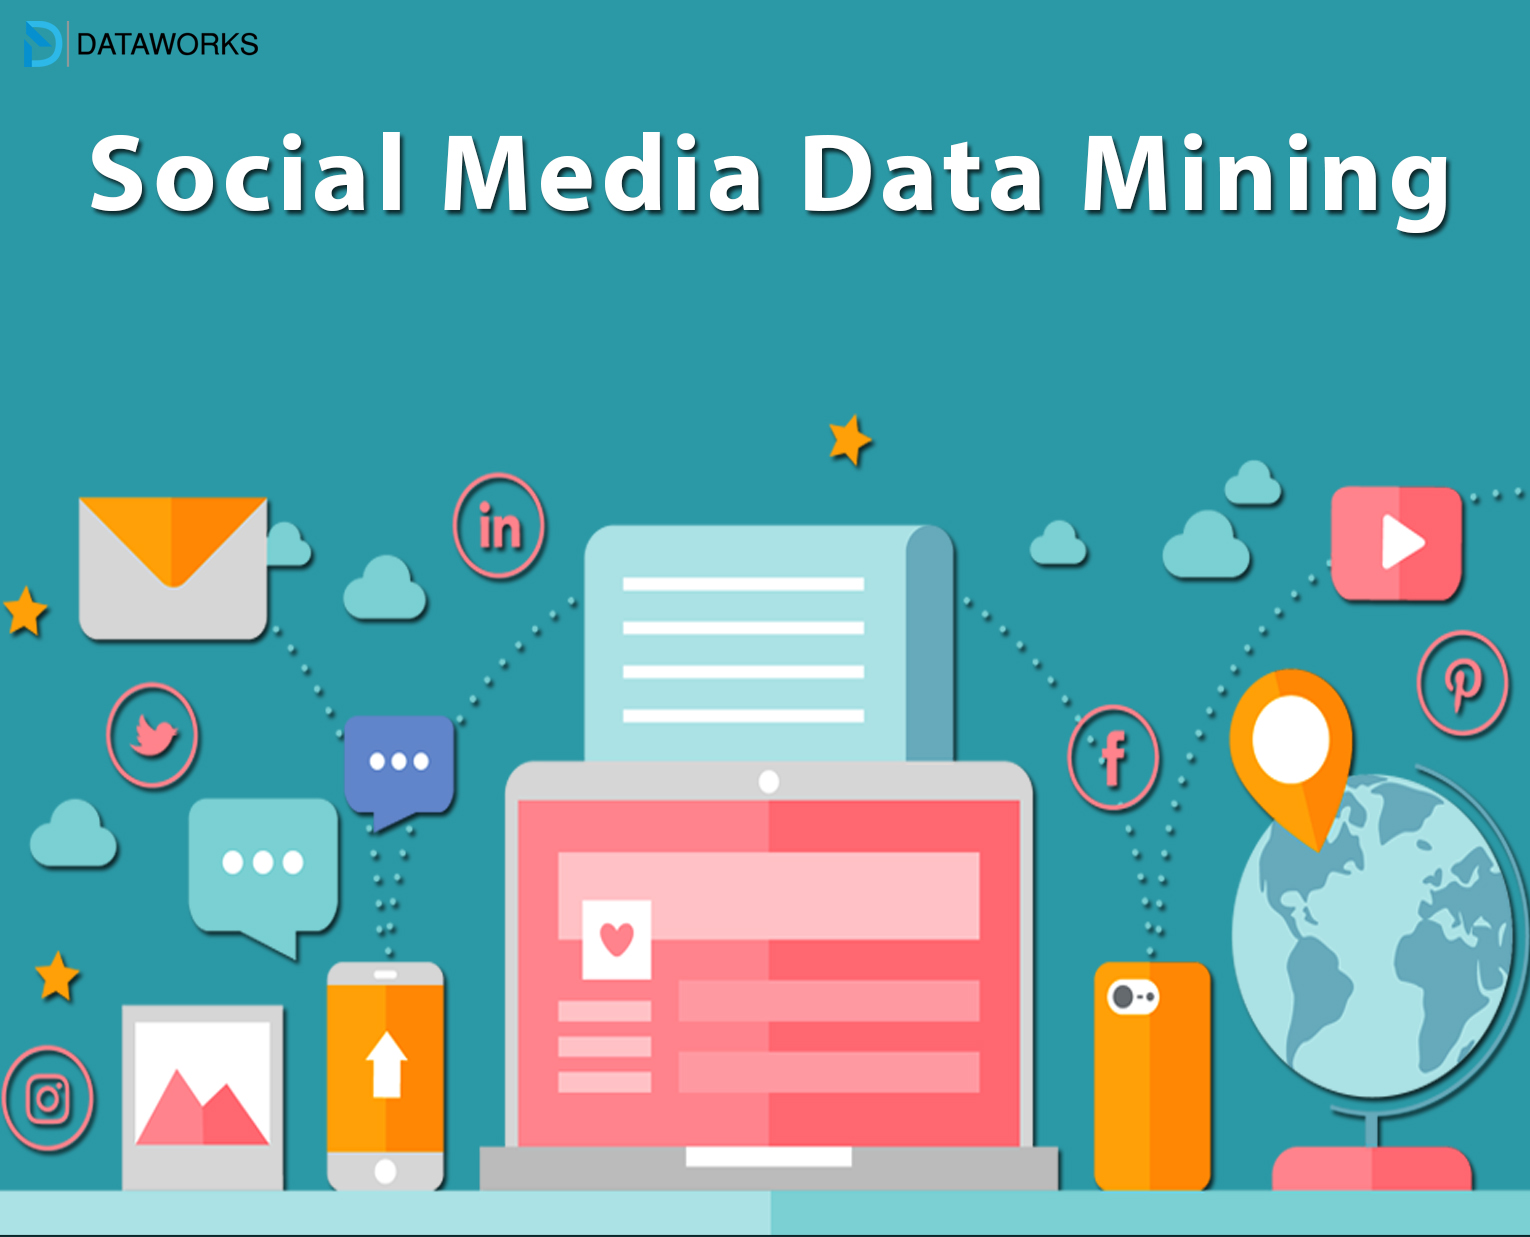 Why is Social Media Data Mining Important in Today's Market Scenario